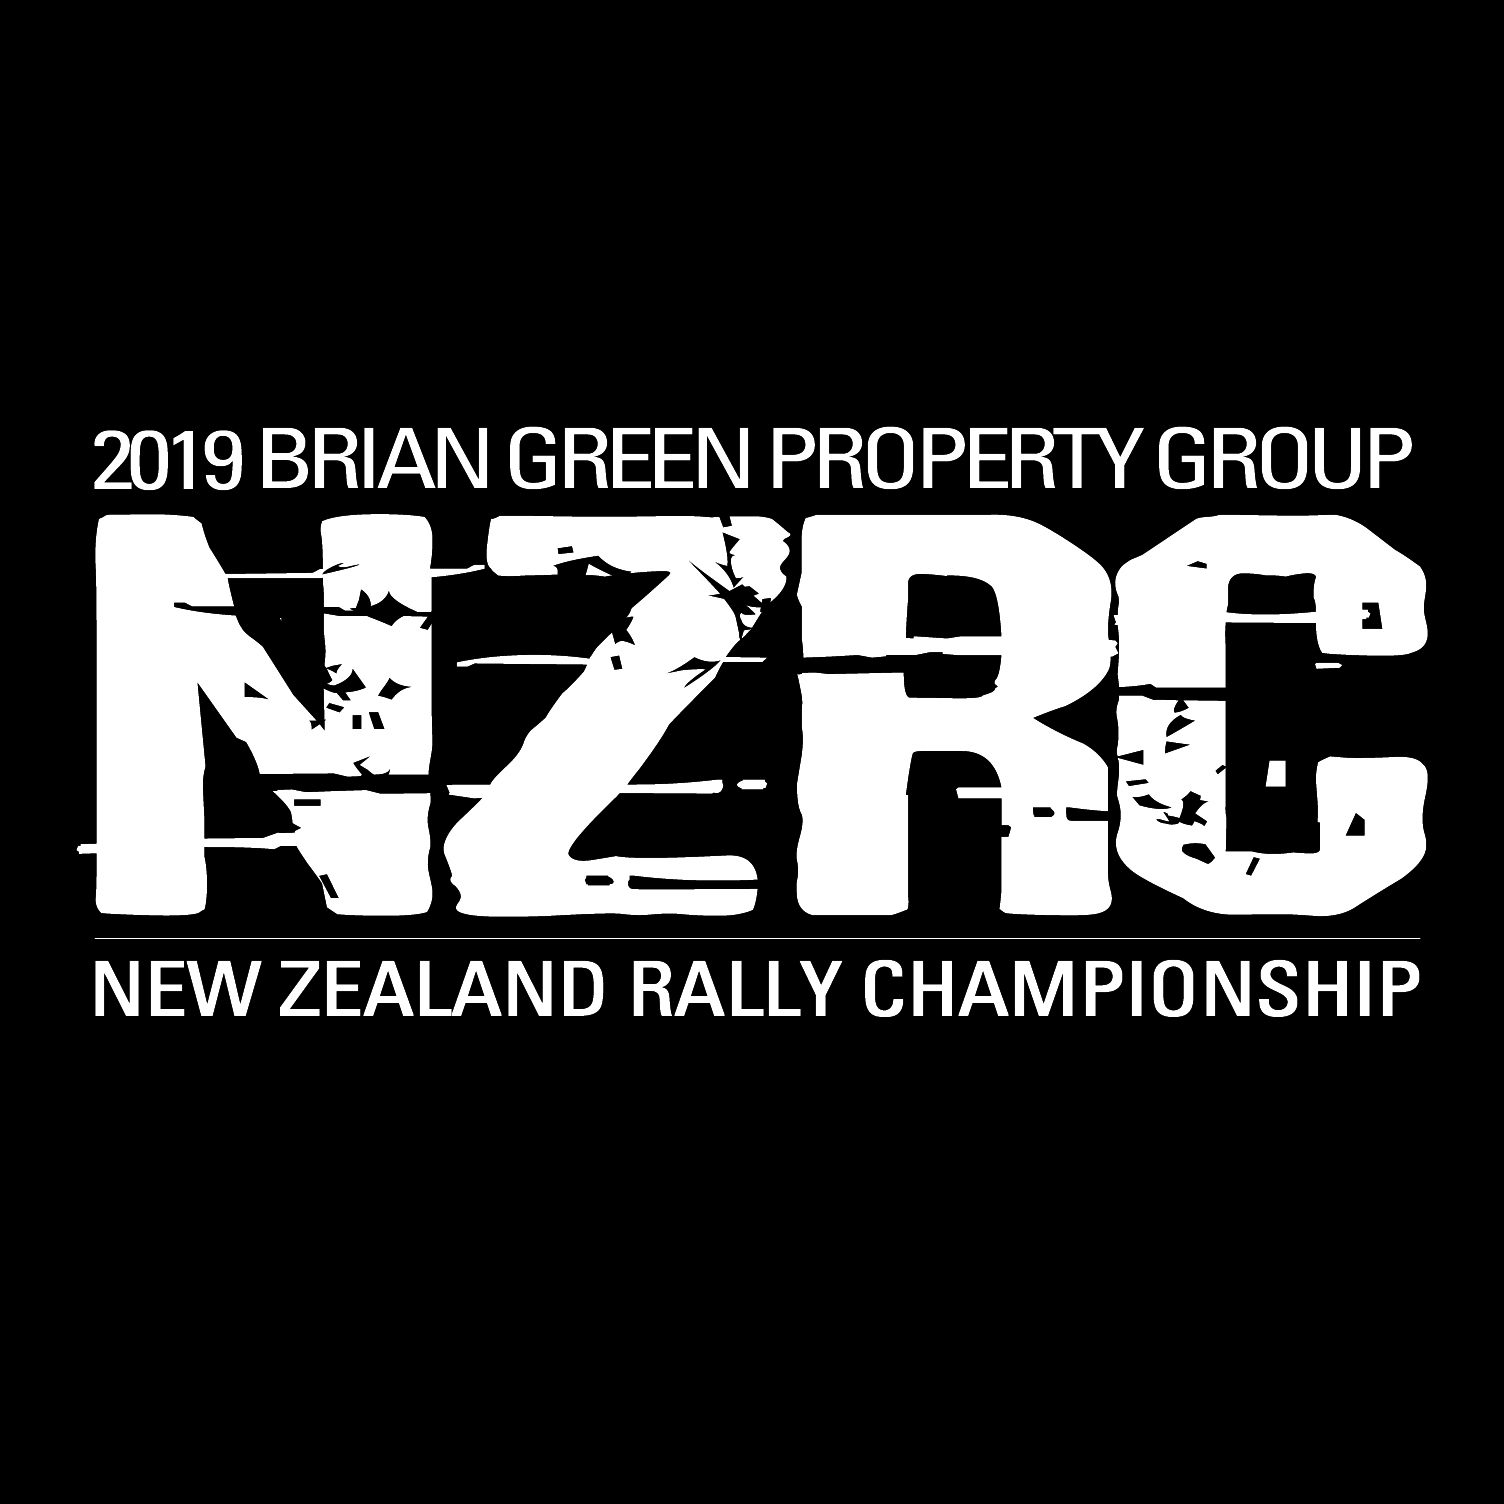 nzrc_web_admin | :: Brian Green Property Group New Zealand Rally Championship ::